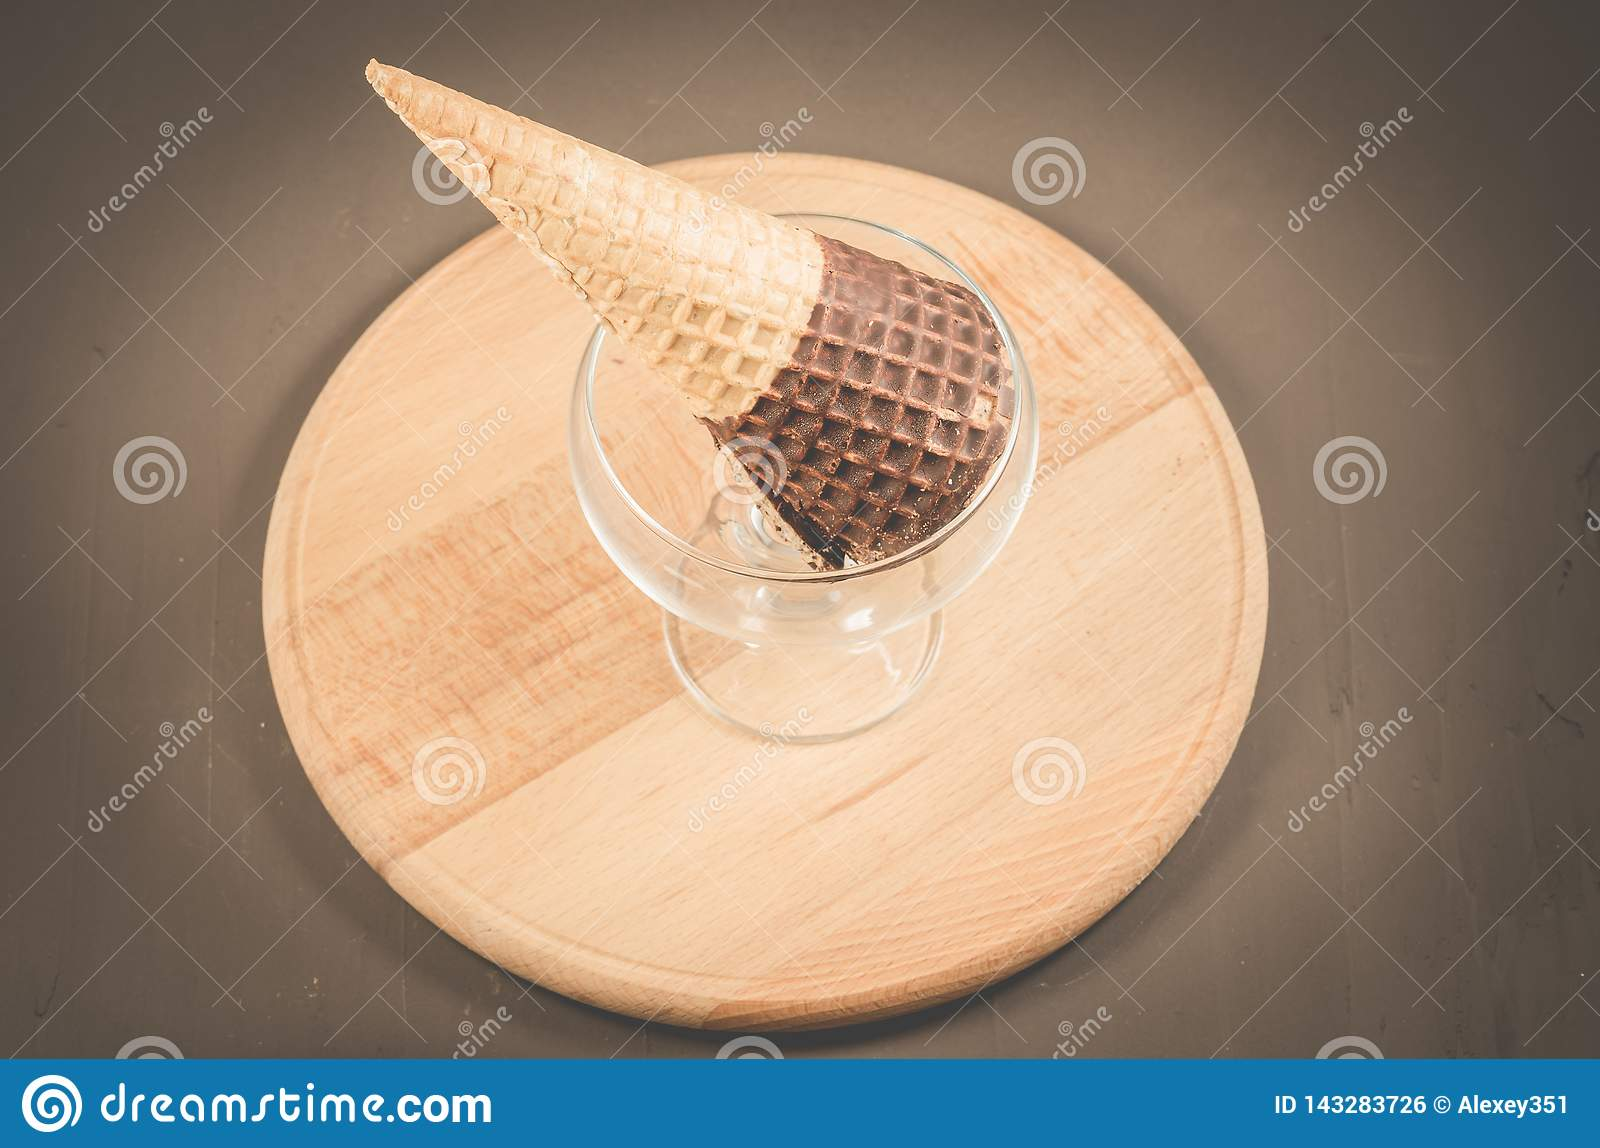 ice cream with cone in chocolate in a glass ice cream parlor/ice cream with cone in chocolate in a glass ice cream parlor on a